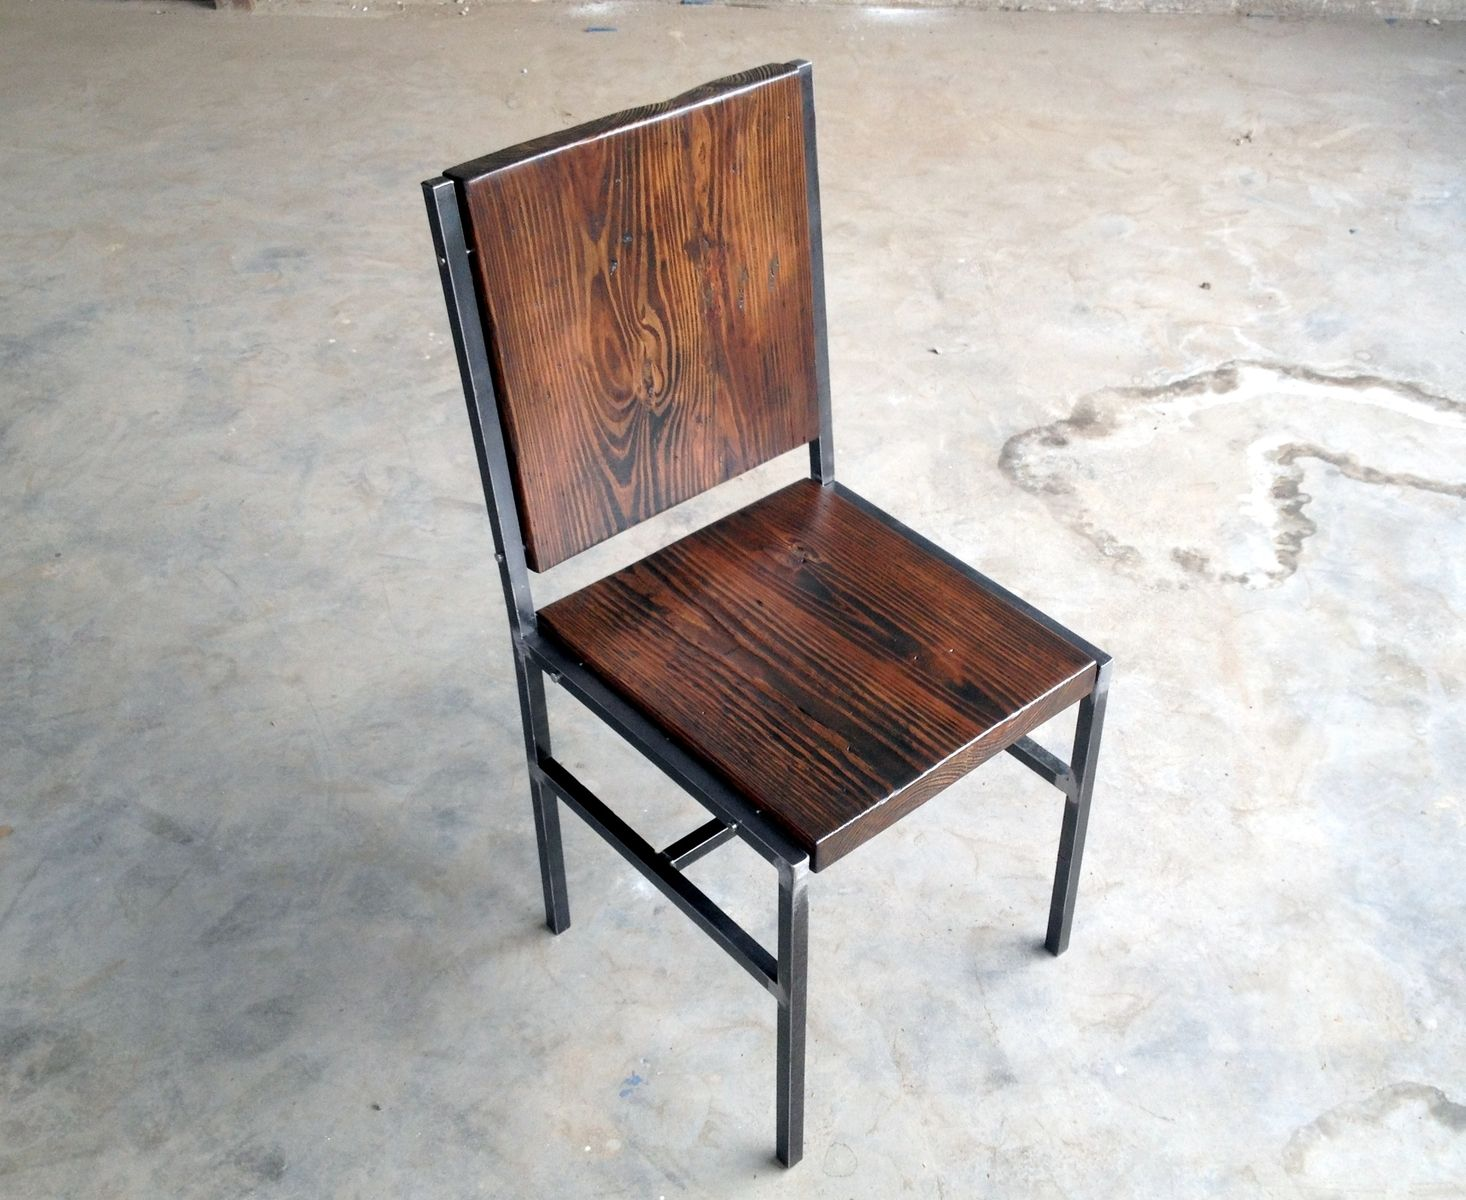 Hand crafted chair stool made of reclaimed wood and steel What are chairs made of